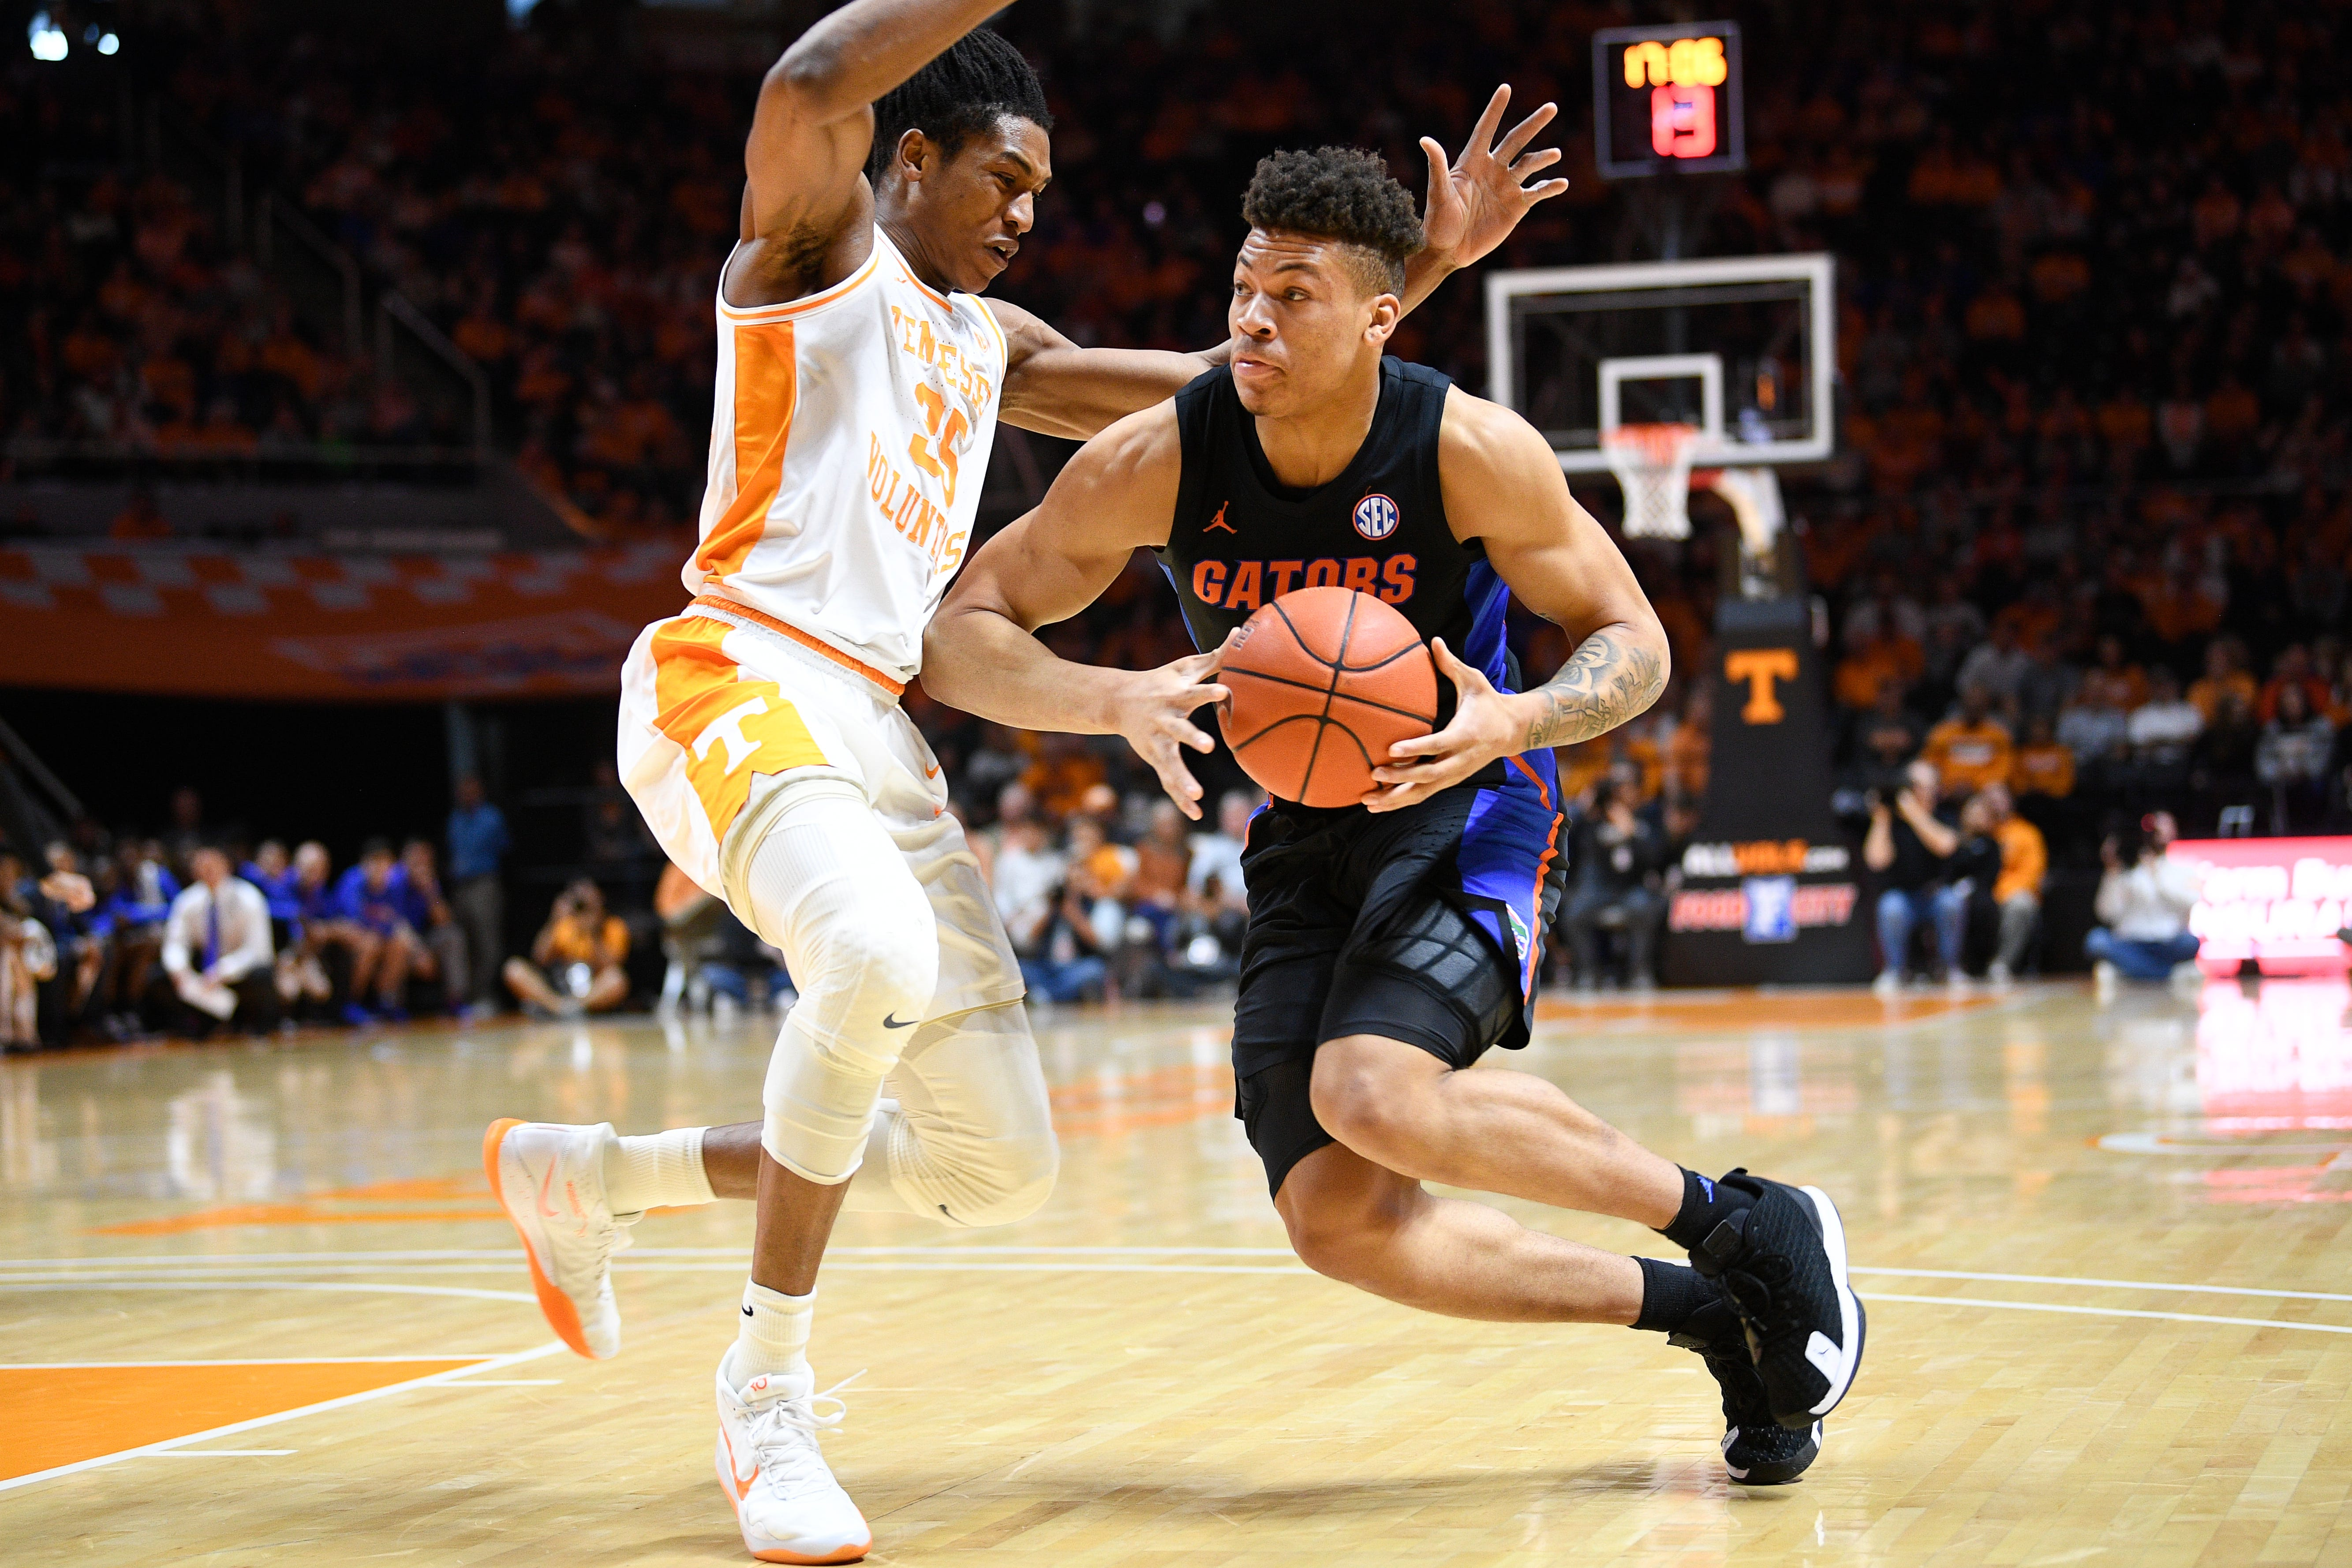 Florida calling off Wednesday's game after Keyontae Johnson's collapse